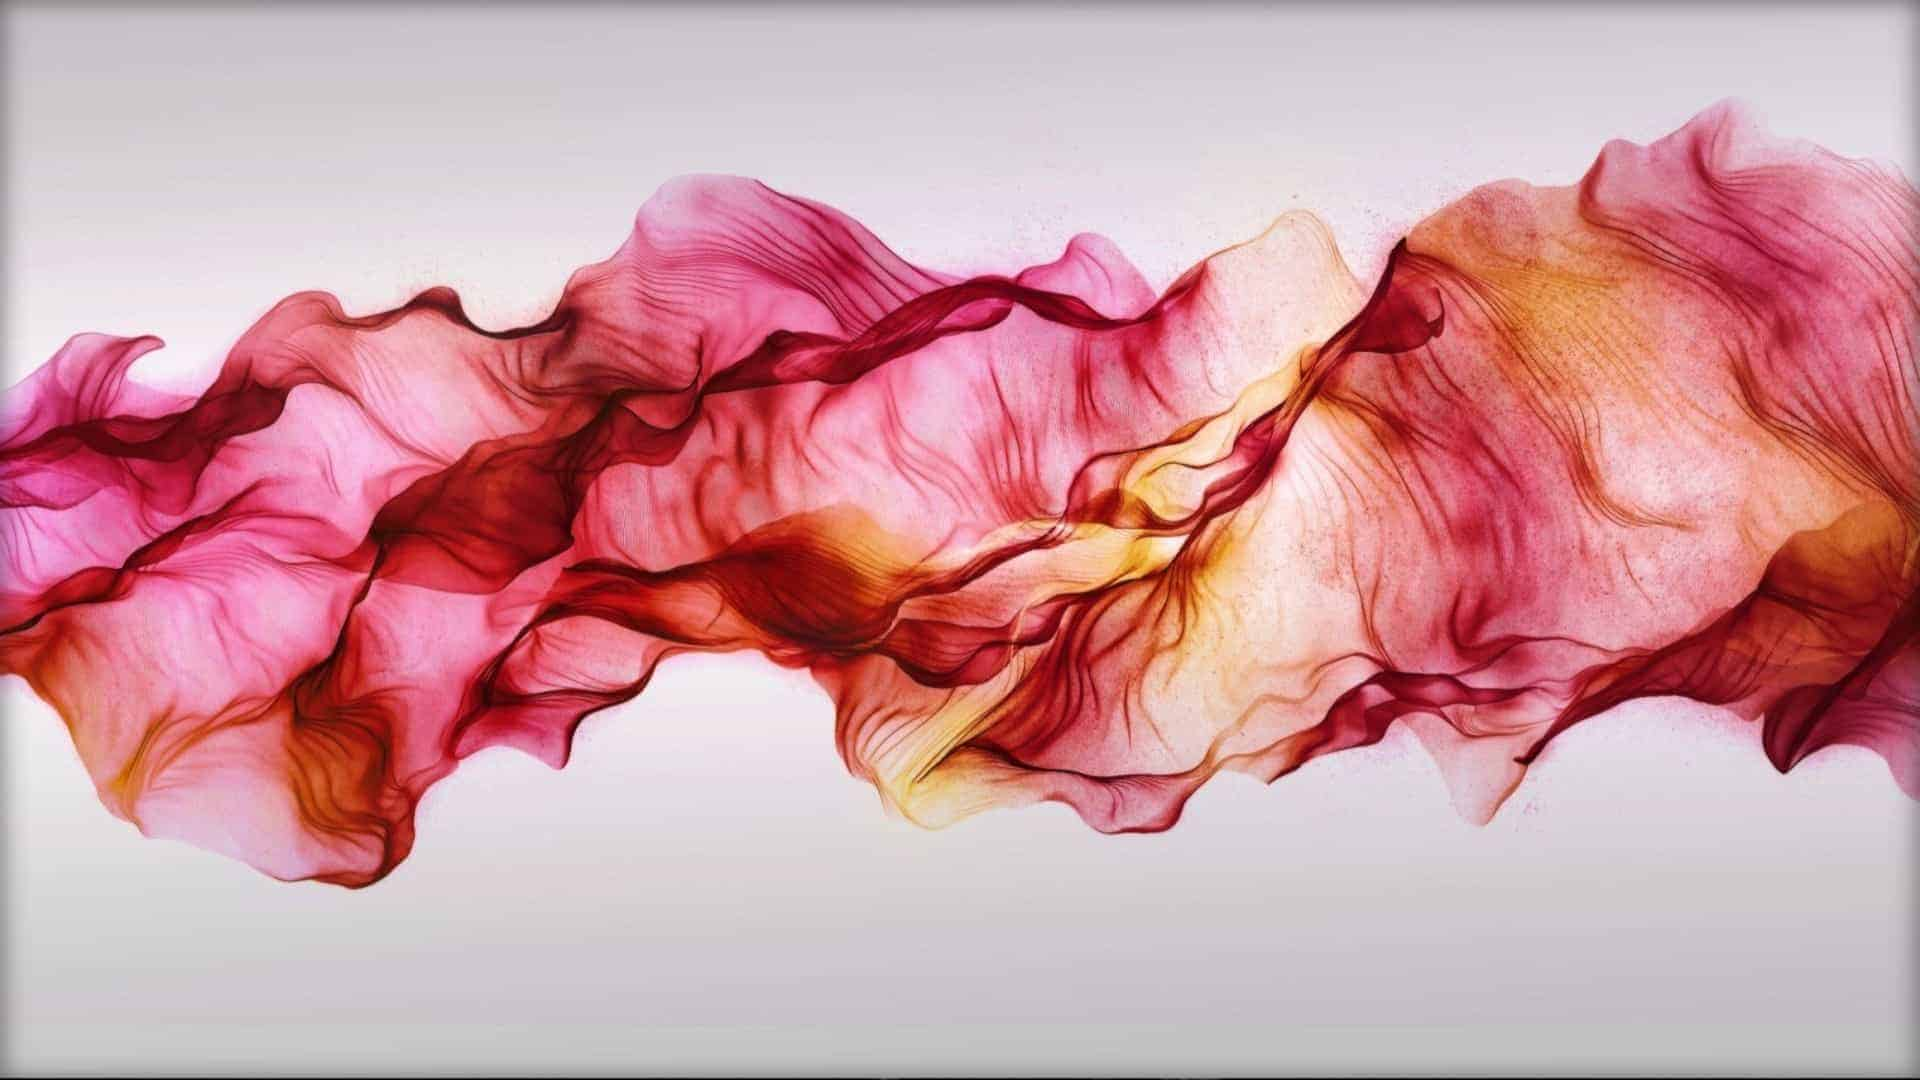 A swirl of translucent pink and yellow silk is shown flowing across the image as if floating.